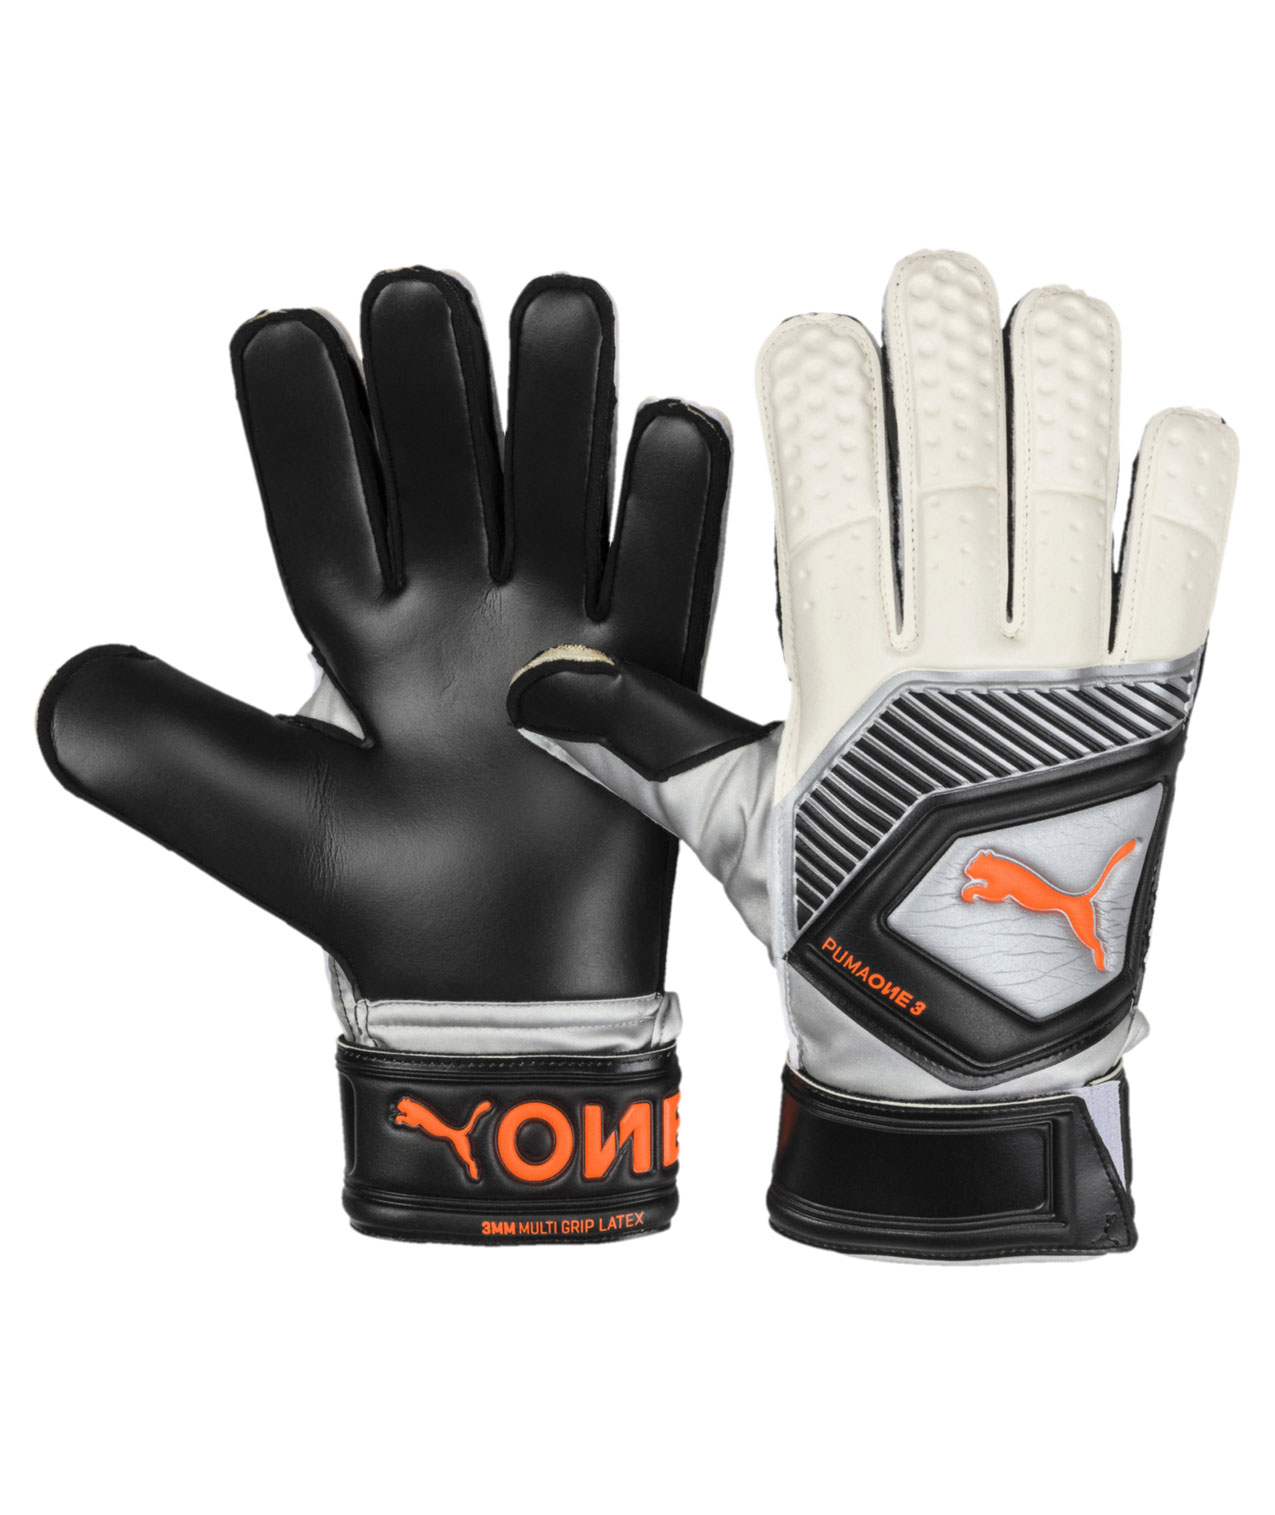 Puma One Protect 3 Gloves